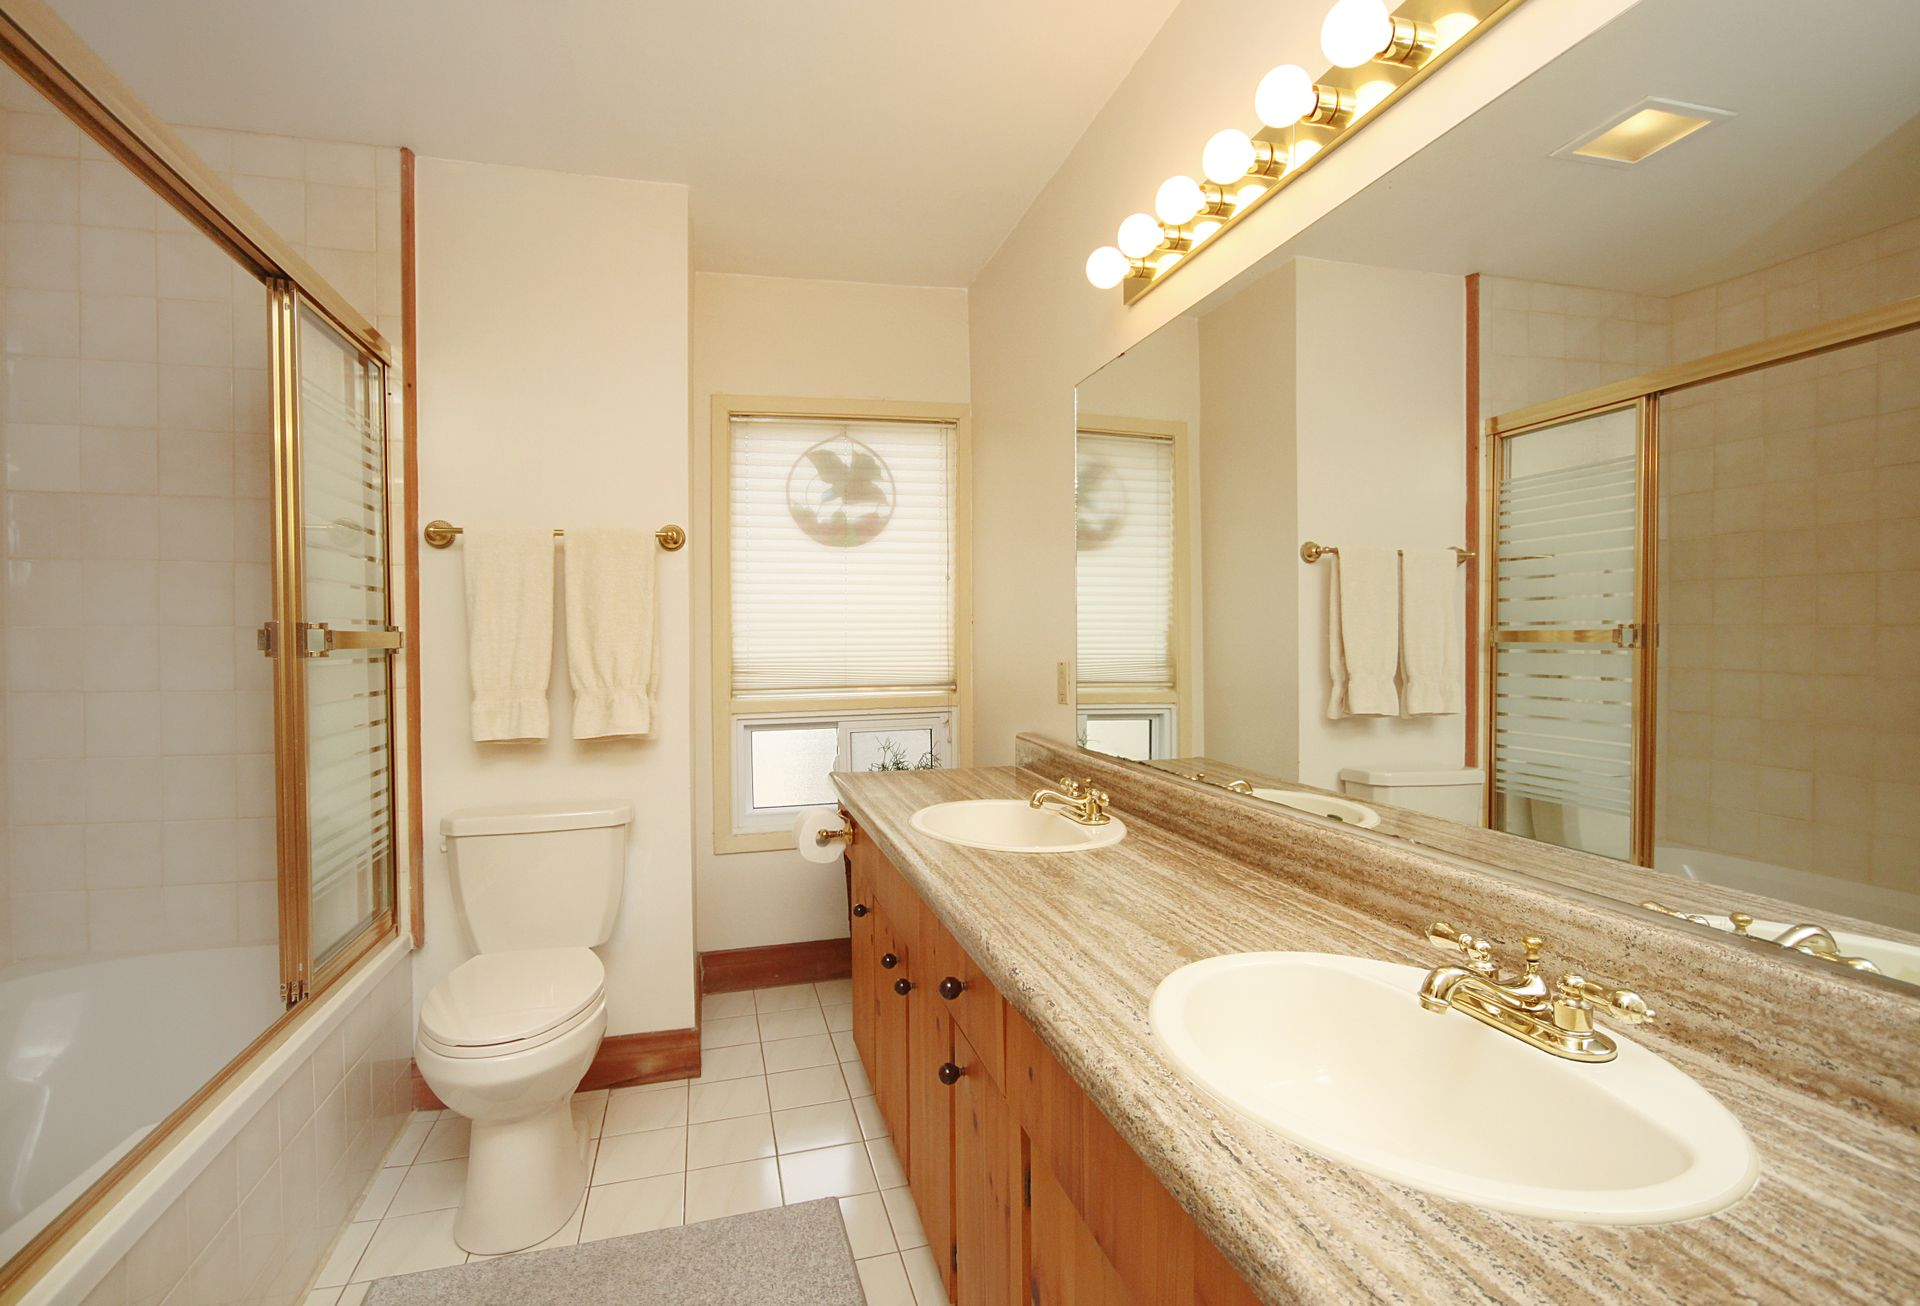 5 Piece Semi-Ensuite Bathroom at 21 West Avenue, South Riverdale, Toronto